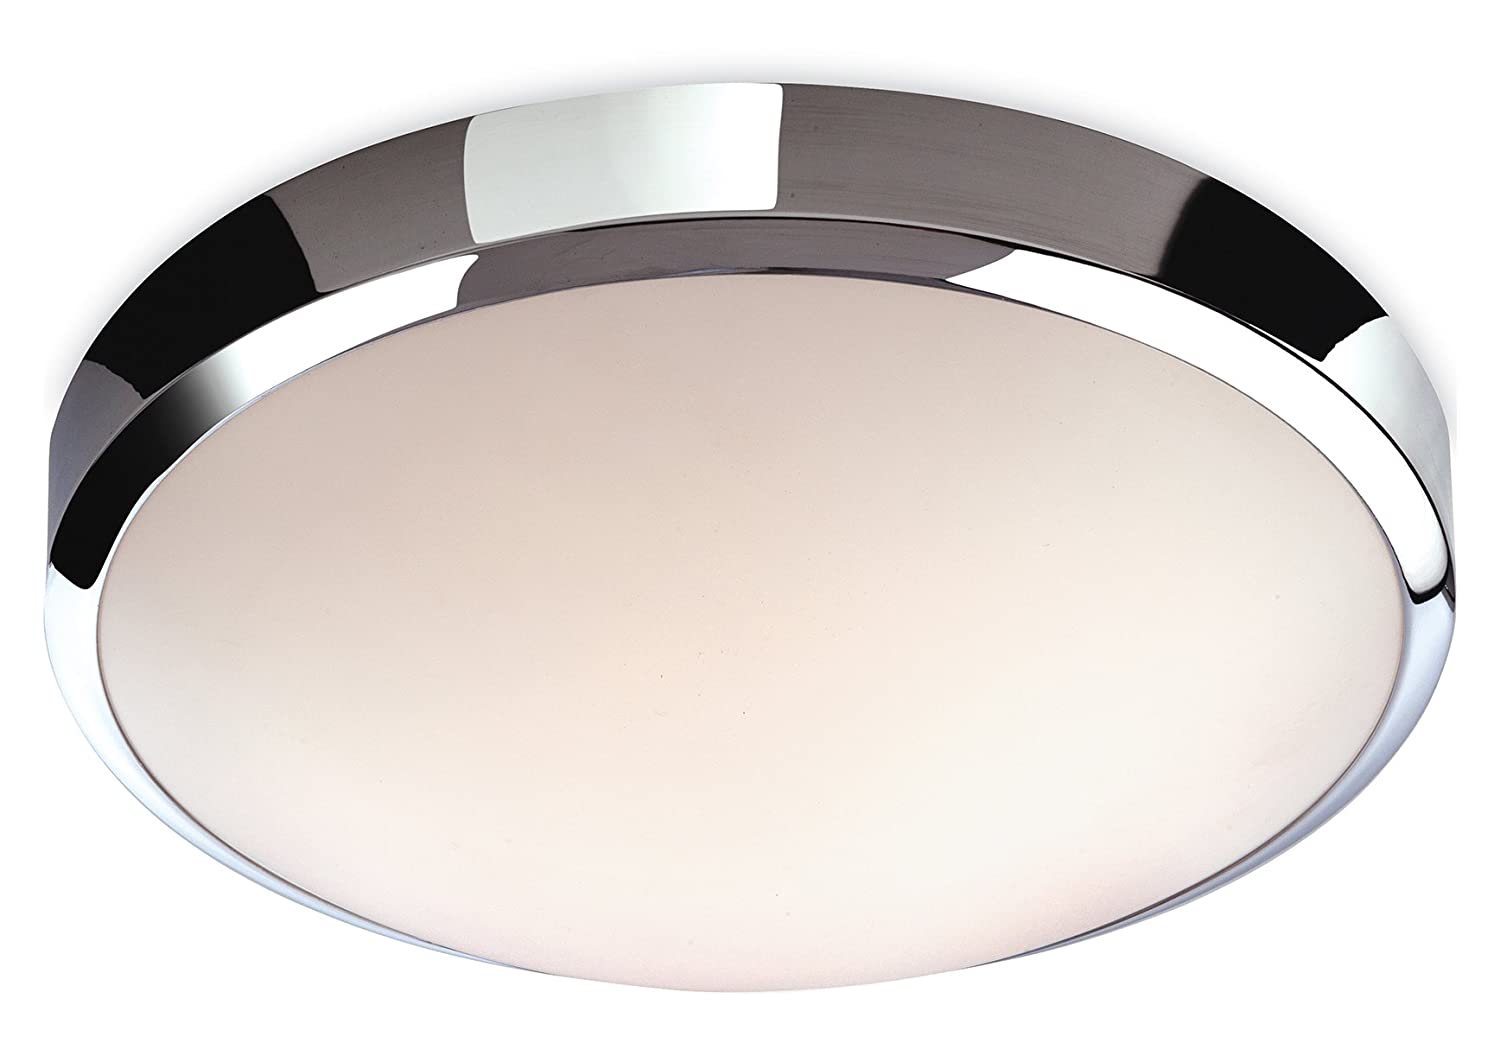 Firstlights products 2343ch 11 watt led toro flush light fitting firstlights products 2343ch 11 watt led toro flush light fitting chrome and opal diffuser silver amazon lighting aloadofball Image collections